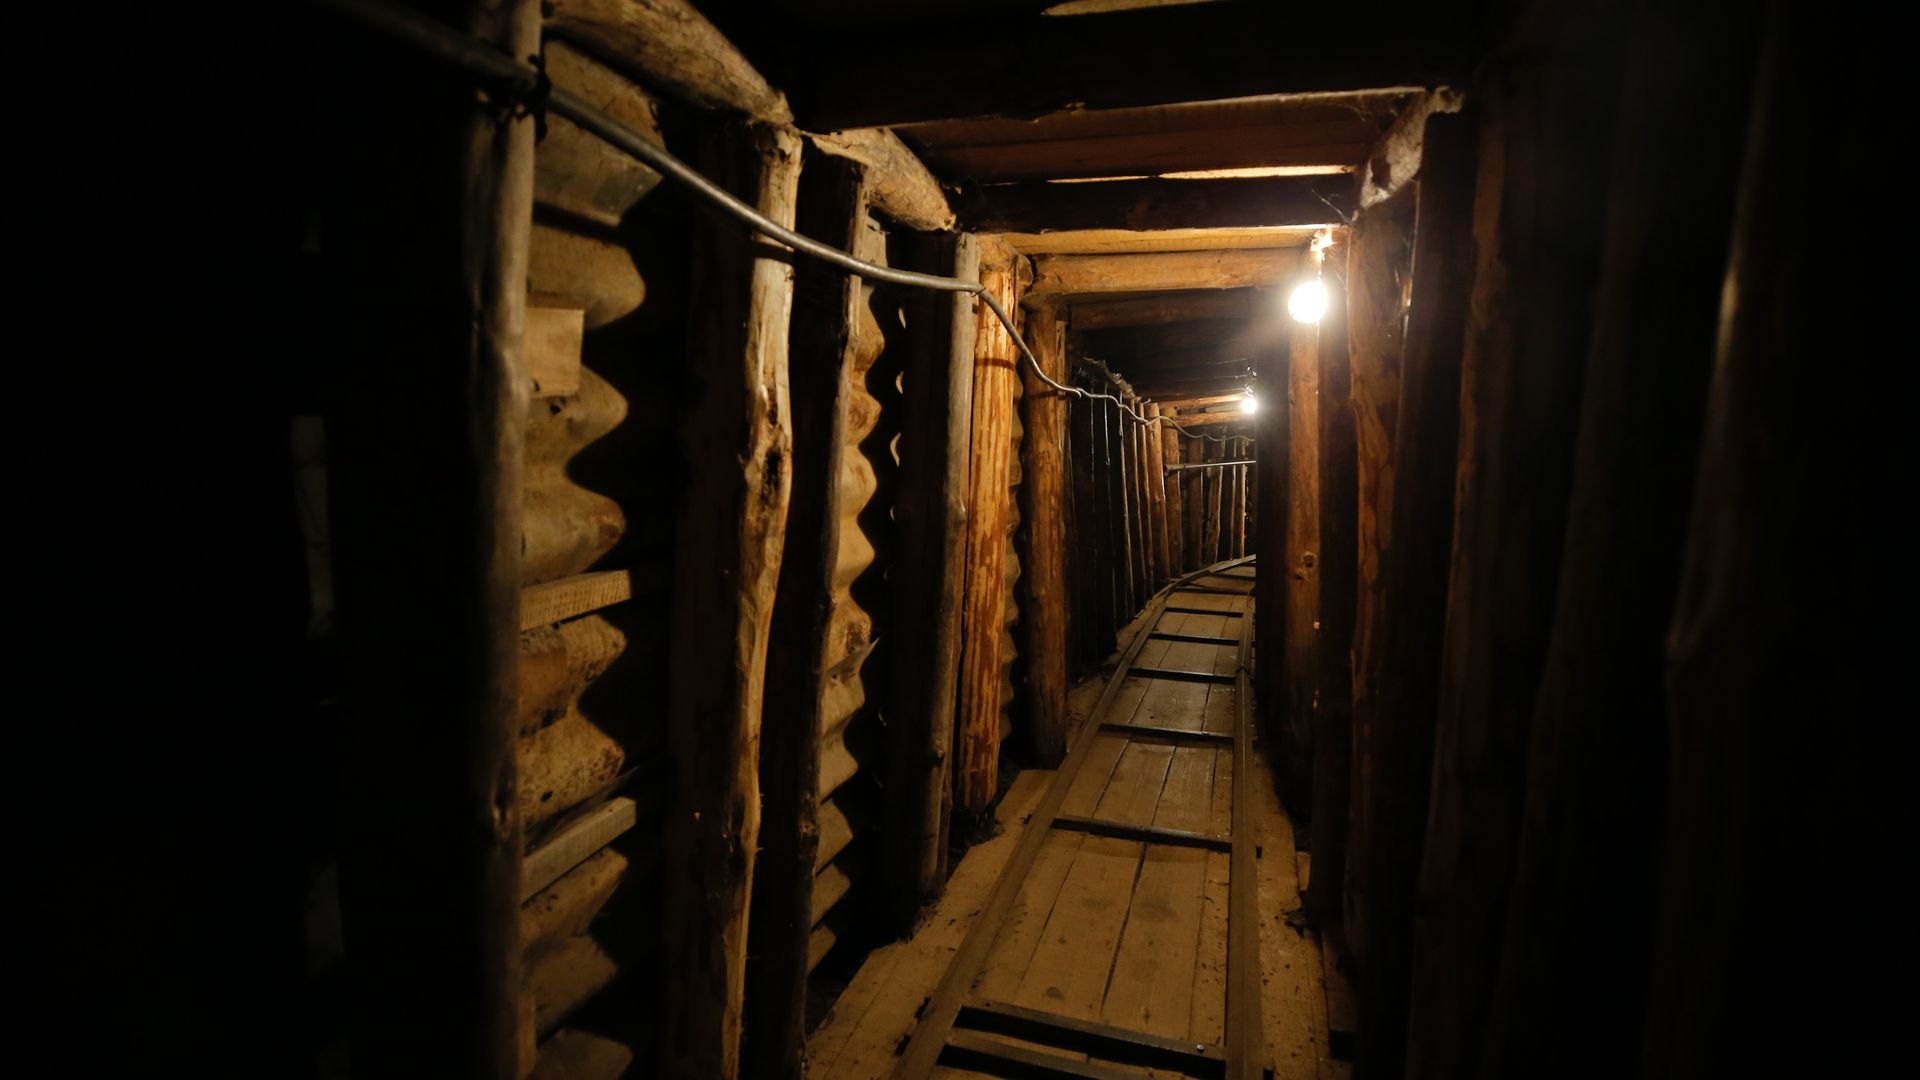 A tunnel in Sarajevo which was used during the siege of the city - Credit: Anadolu Agency via Getty Images